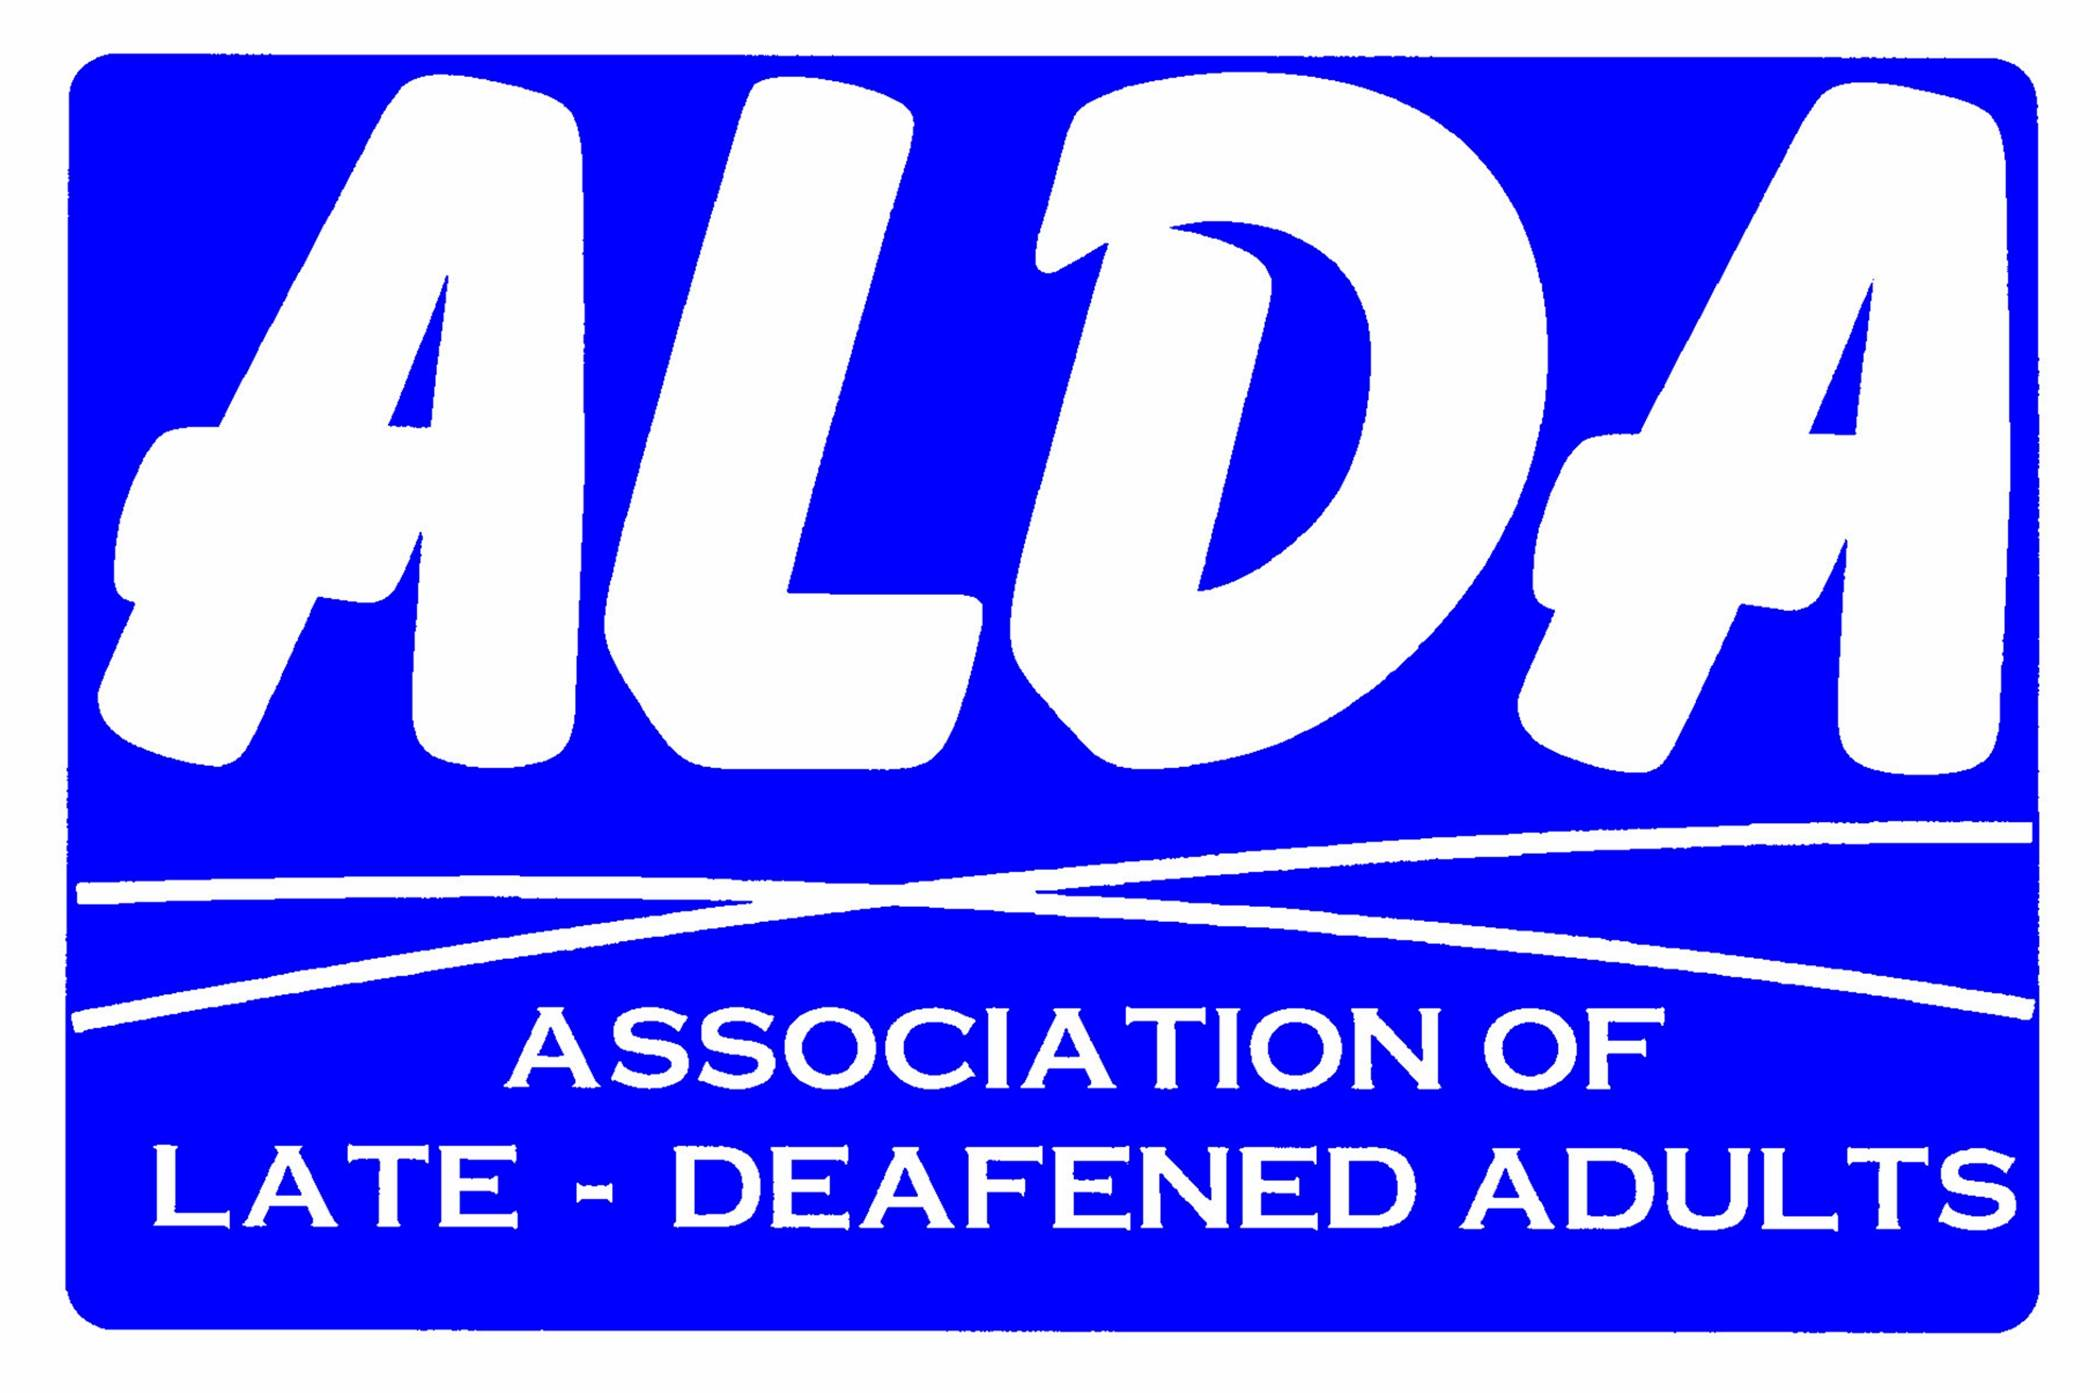 late adult deafened of Association